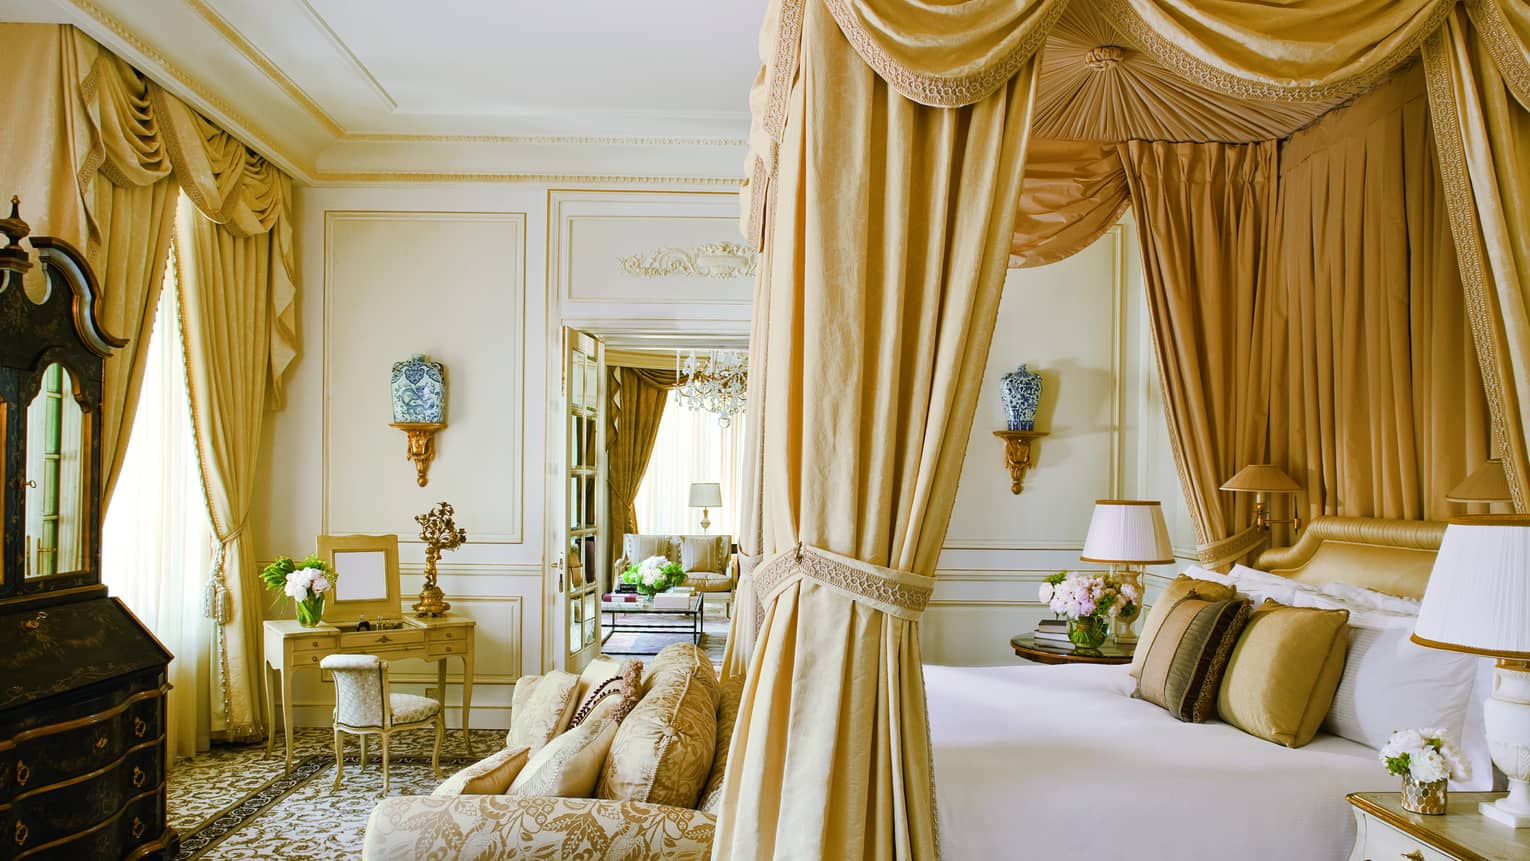 Elaborate Royal Suite, gold upholstery, canopy bed and curtains